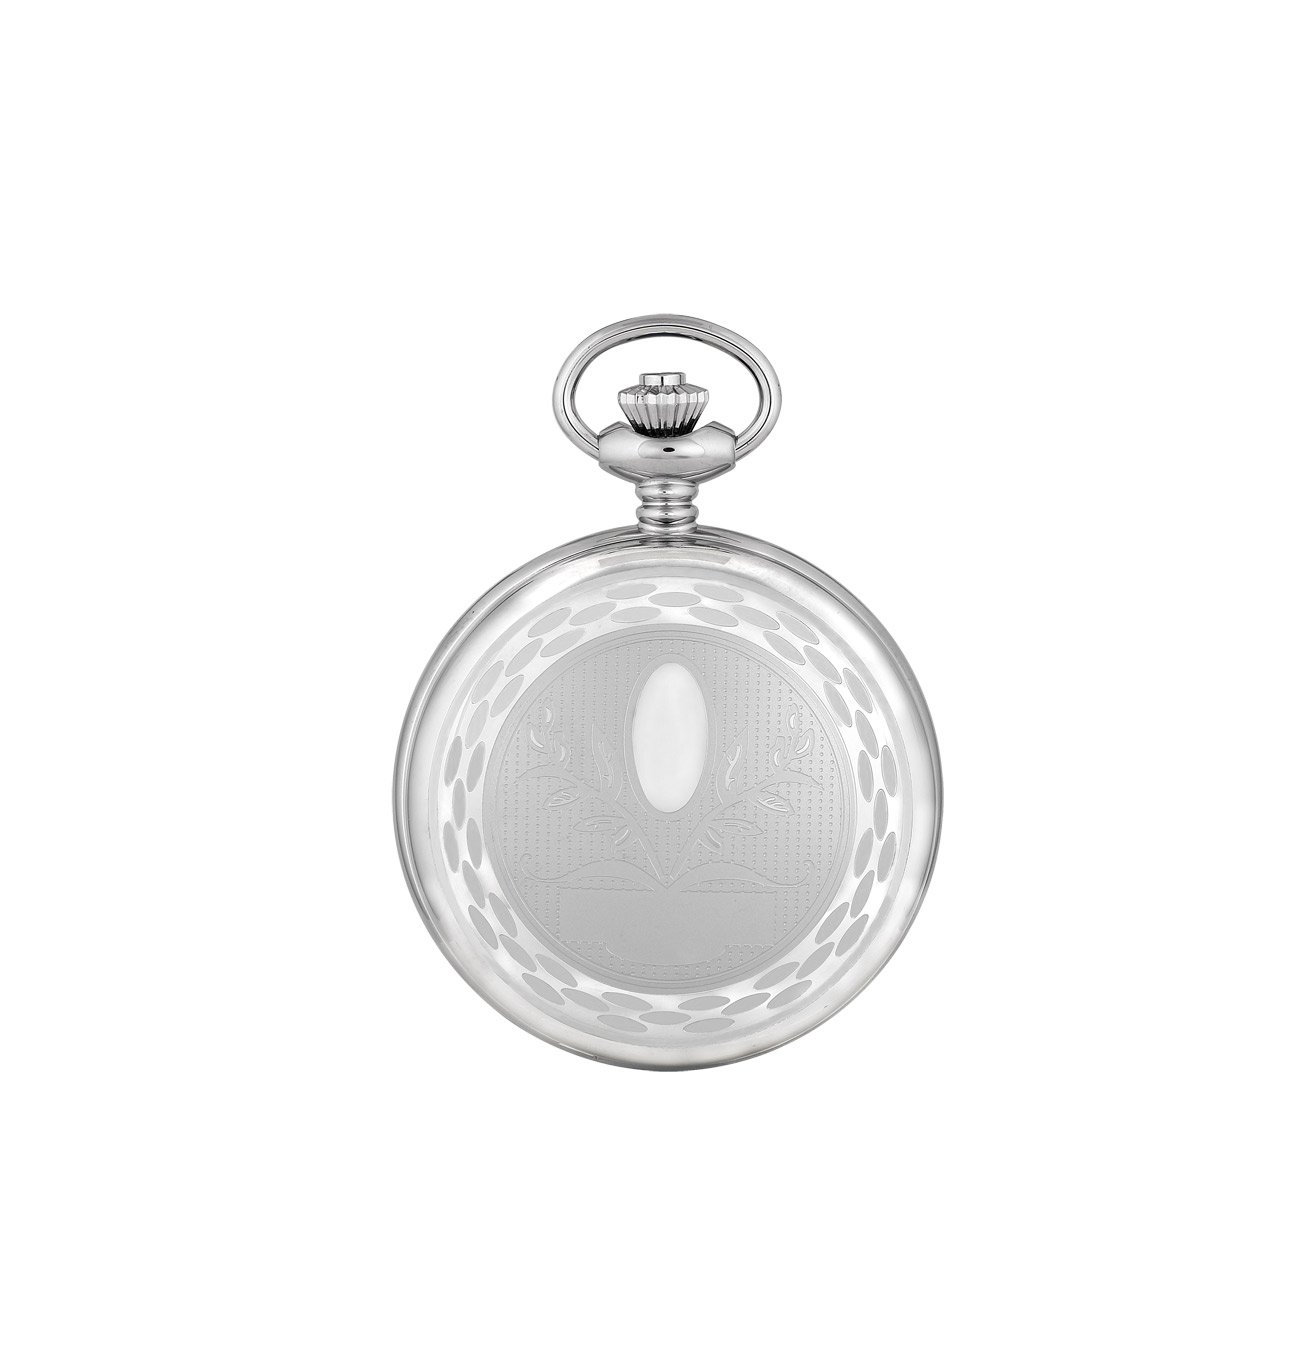 Charles-Hubert, Paris Premium Collection Stainless Steel Mechanical-Hand-Wind Pocket Watch (Model: DWA006) by CHARLES-HUBERT PARIS